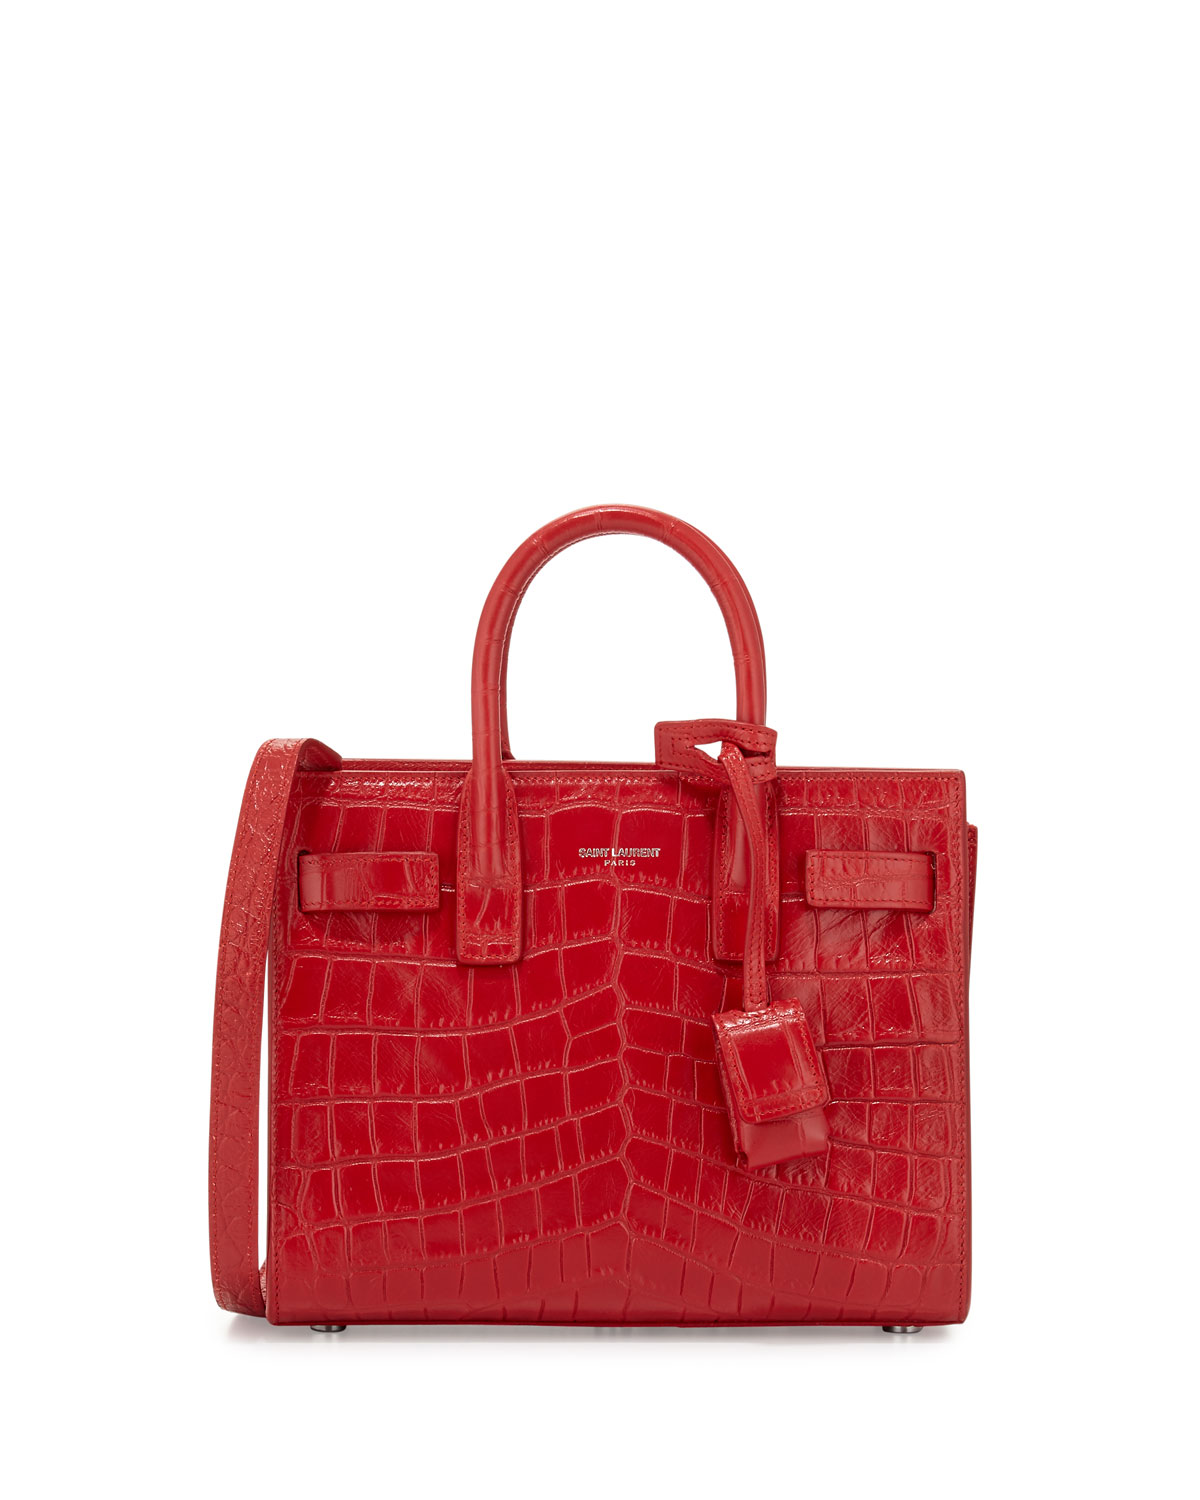 Saint Laurent Sac de Jour Nano Croc-Embossed Satchel Bag 44985be090a5c